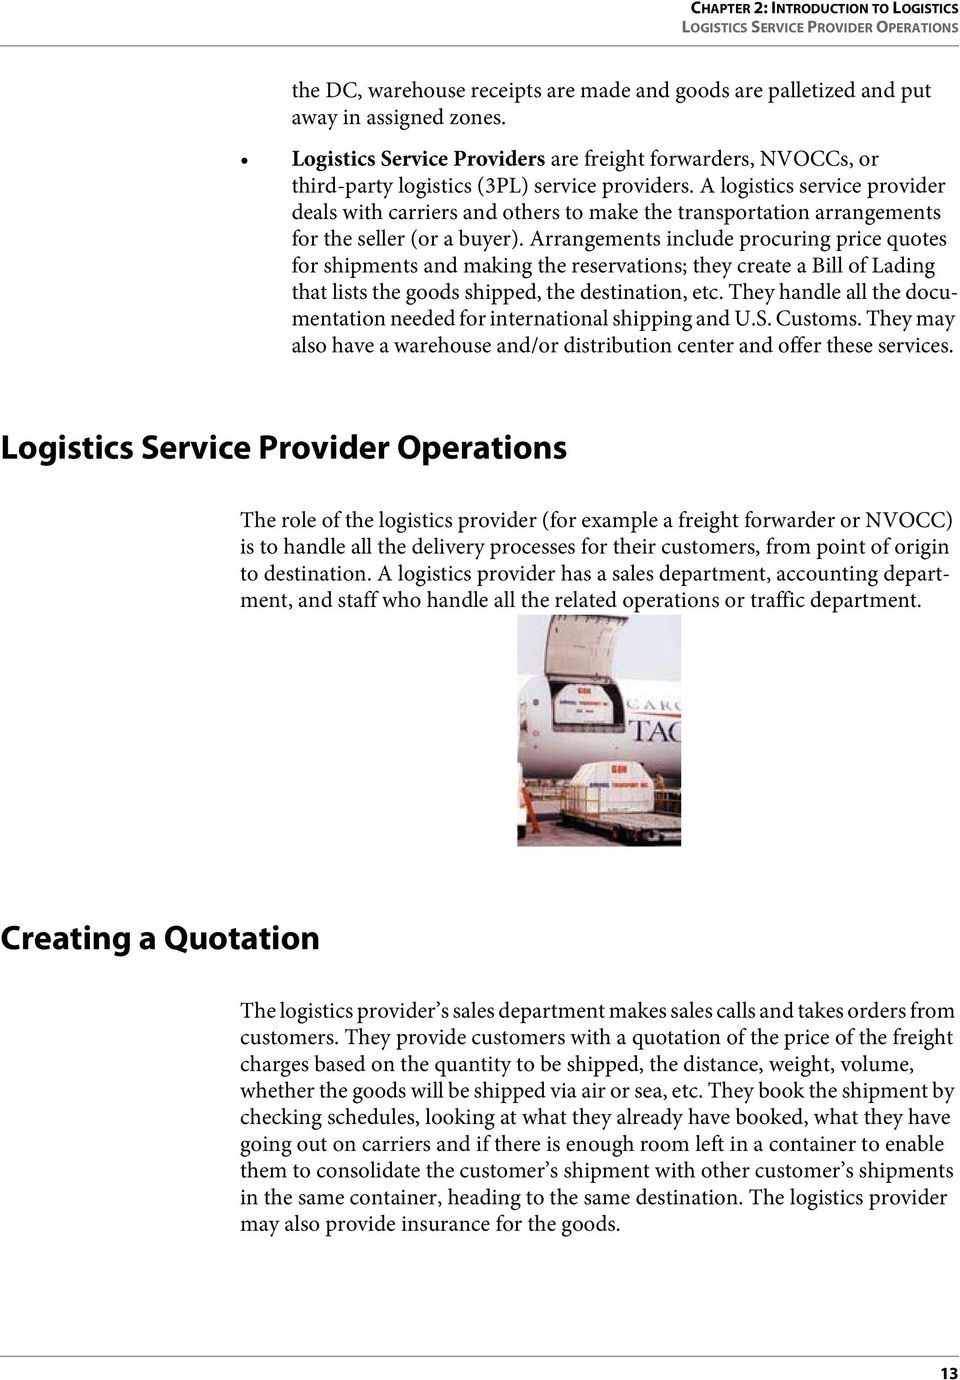 A logistics service provider deals with carriers and others to make the transportation arrangements for the seller (or a buyer).